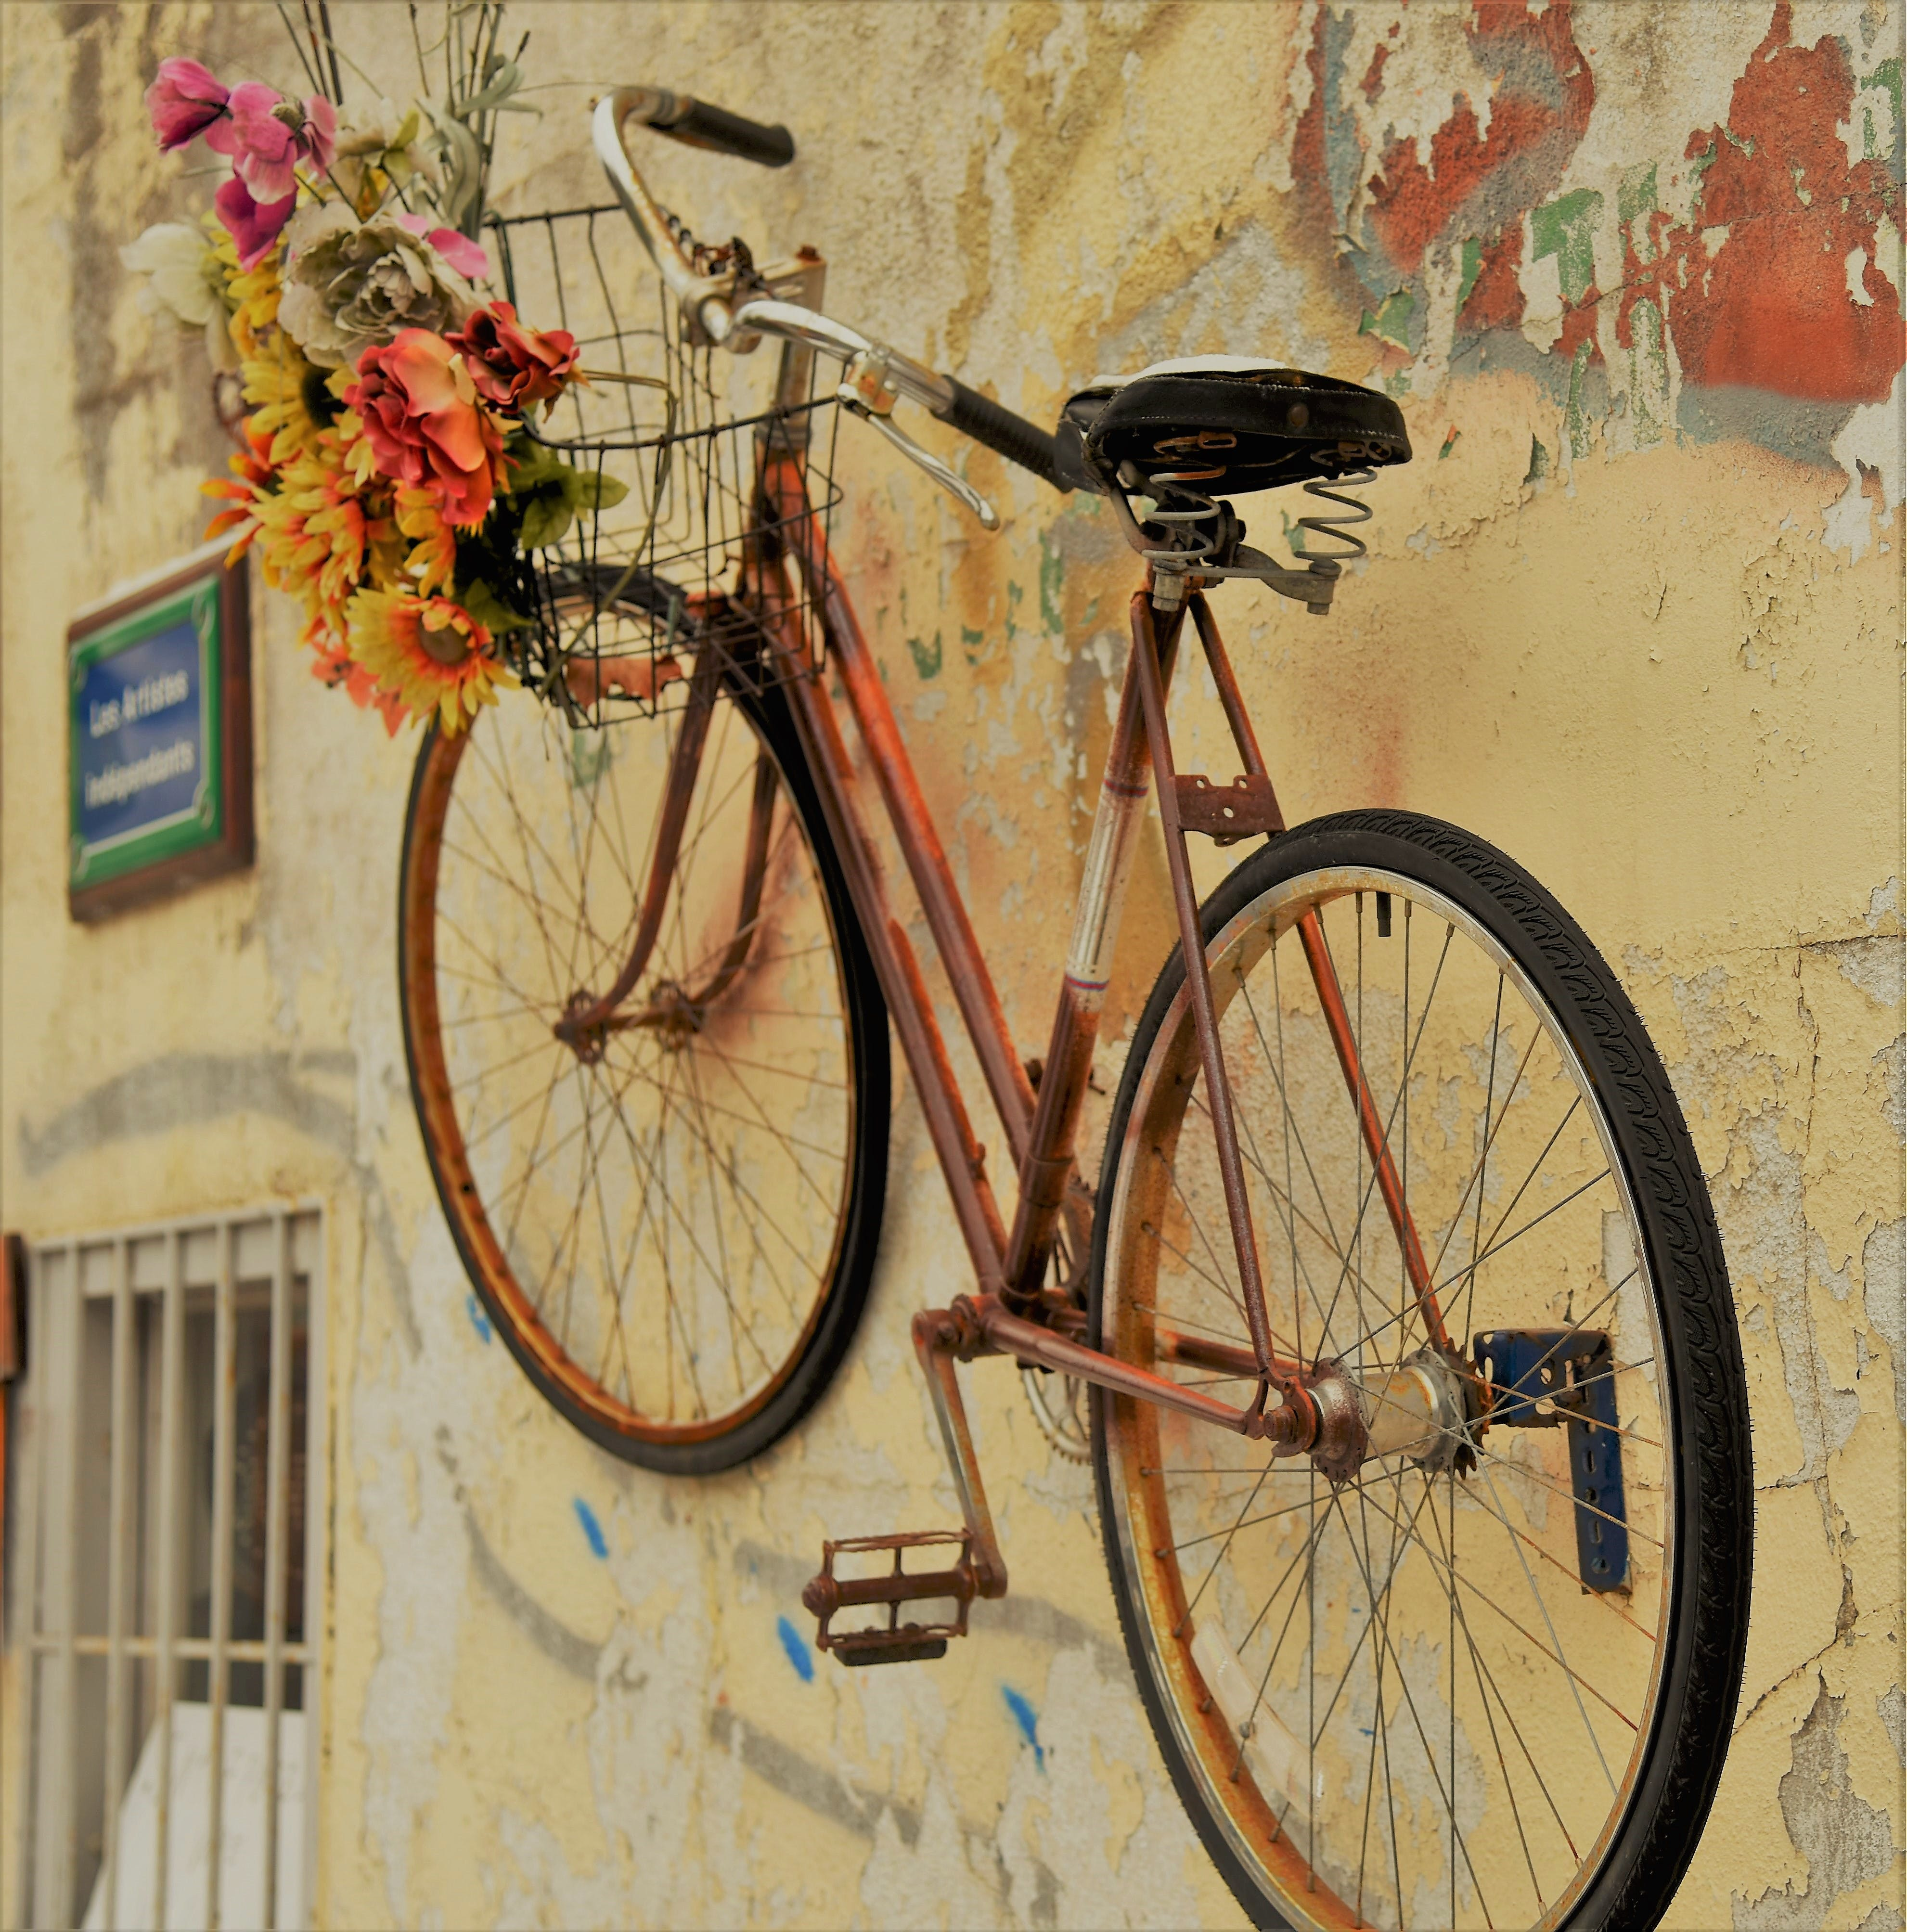 Free stock photo of bicycle, building, flower, wall